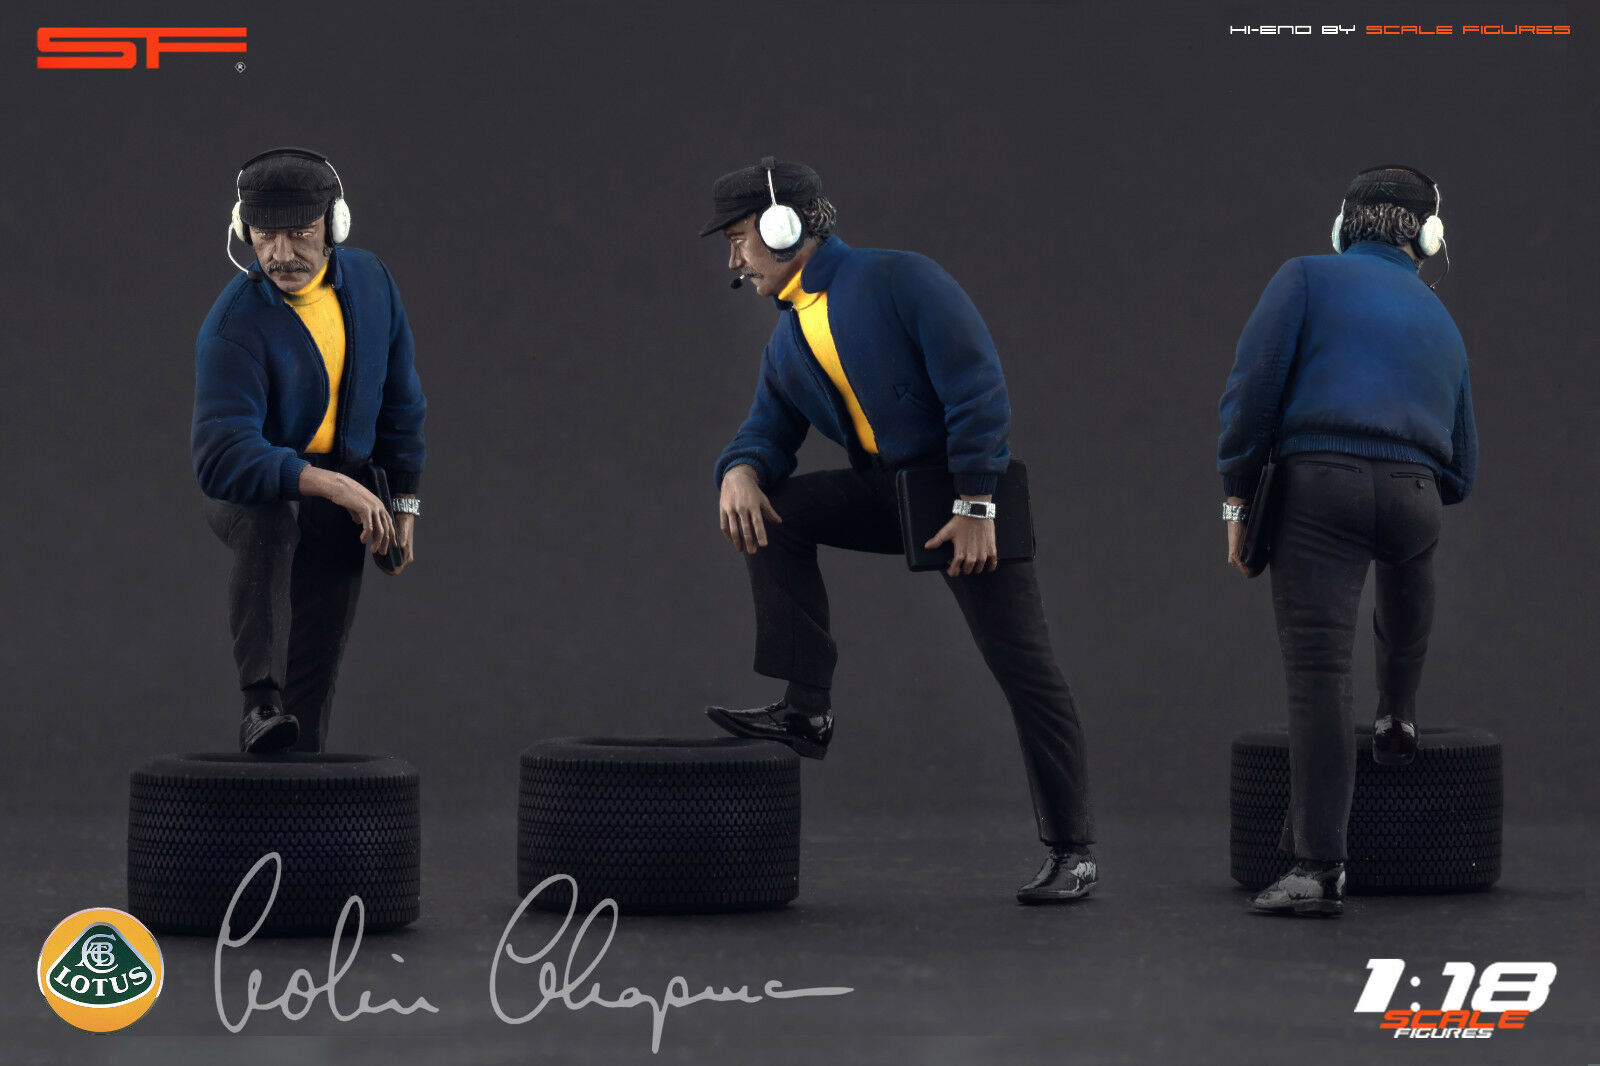 1 18 Colin Chapman VERY RARE    figurine NO CARS    for Lotus collectors